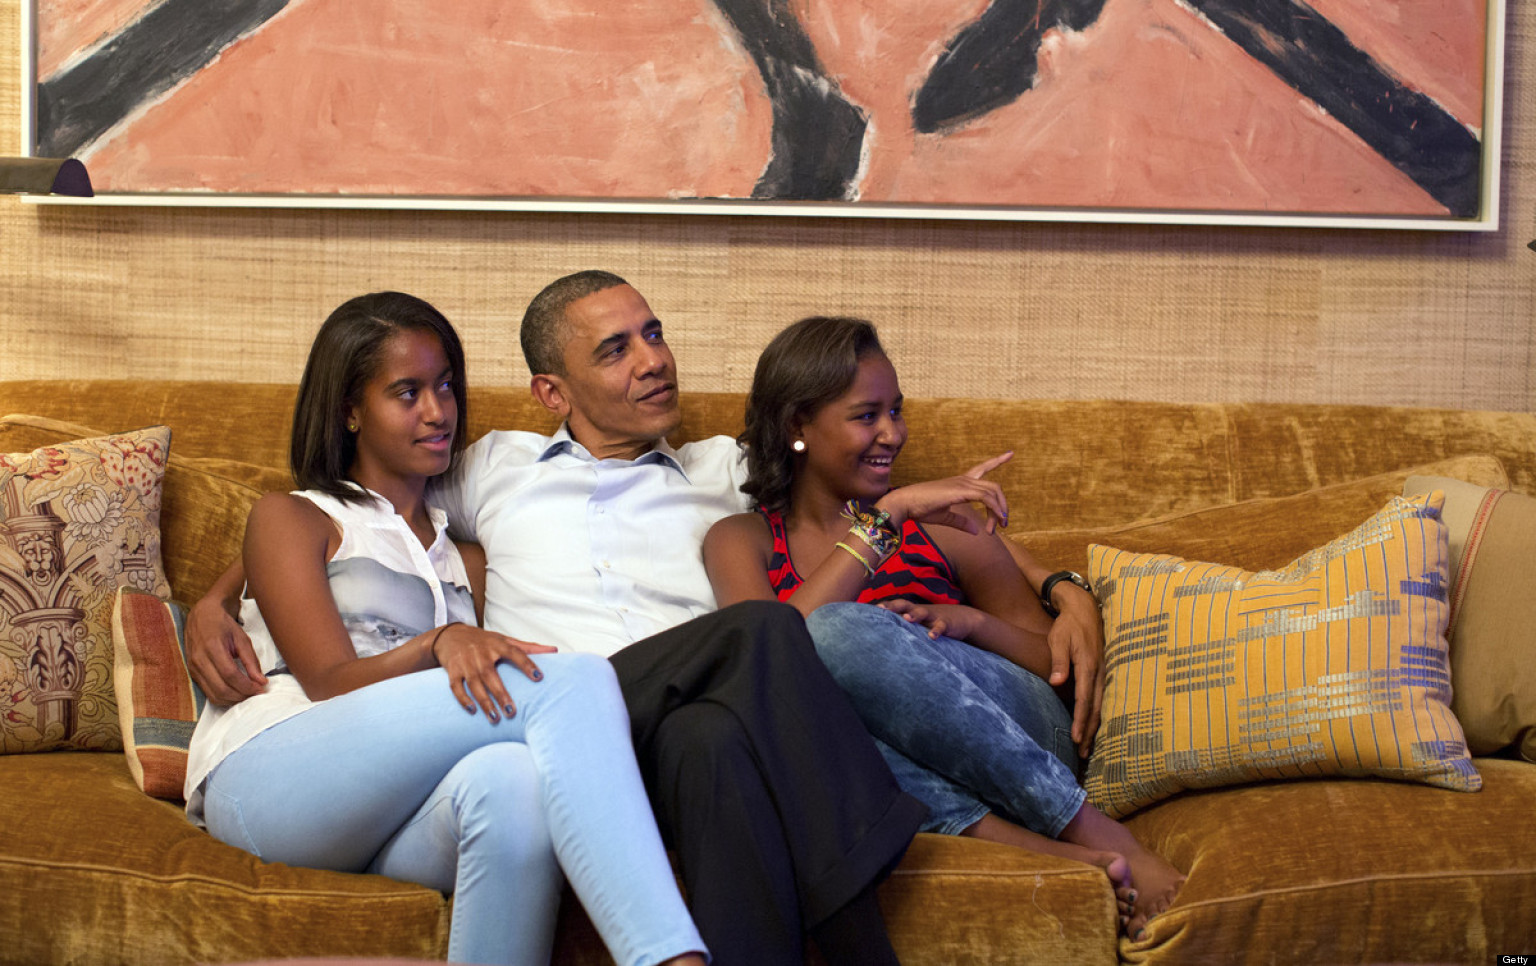 Growing Up In The White House  What It s Like To Be Sasha And Malia Obama    HuffPost. Growing Up In The White House  What It s Like To Be Sasha And